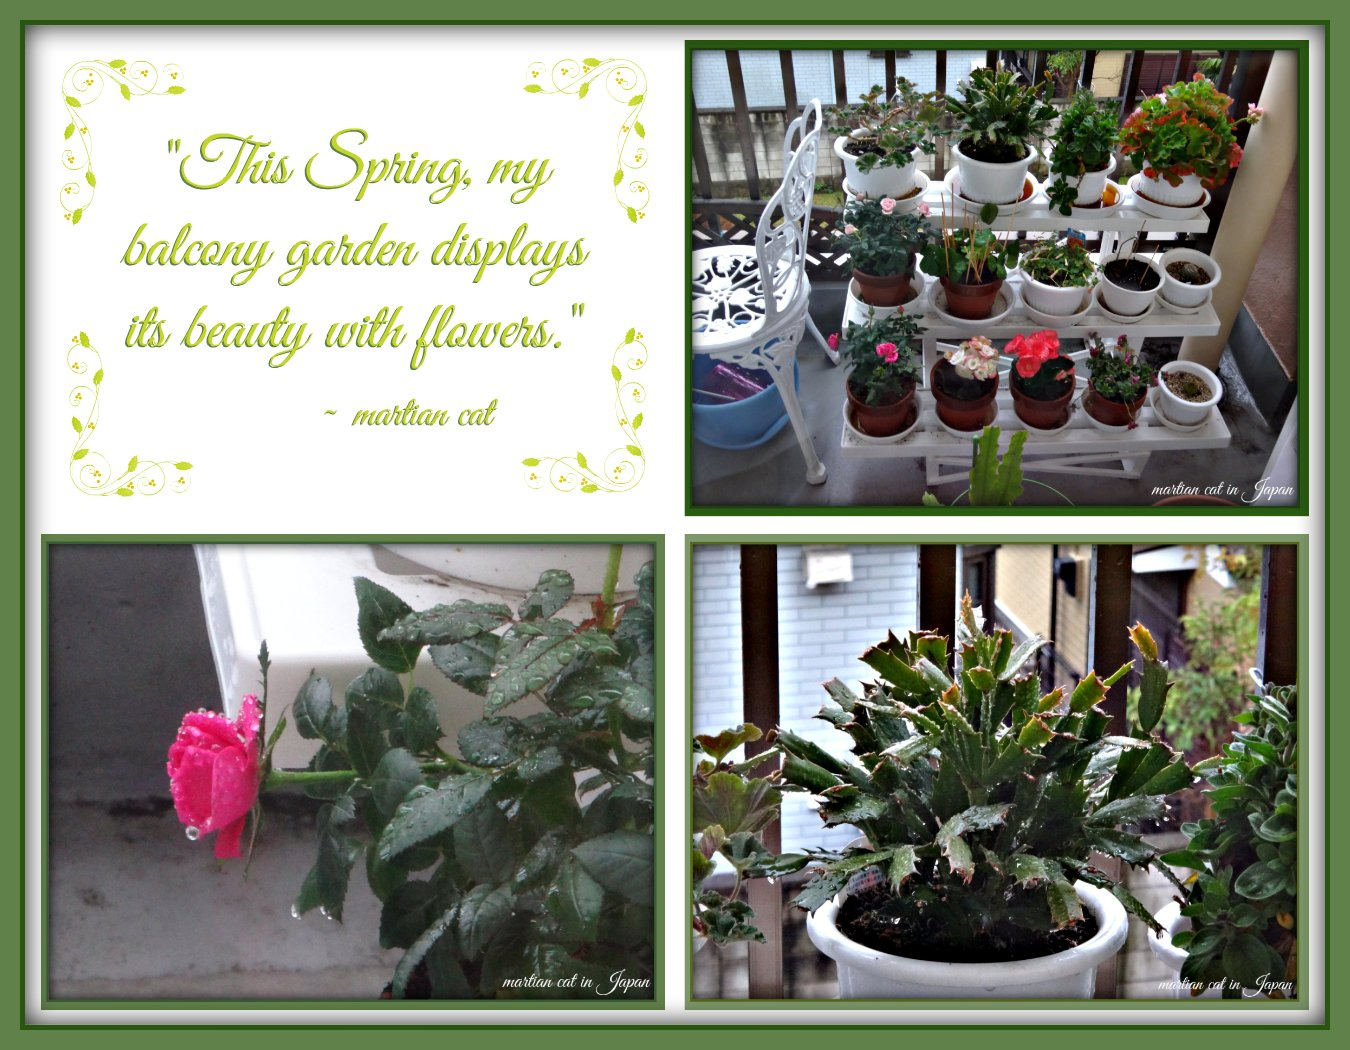 """This Spring, my balcony garden displays it beauty with flowers."""